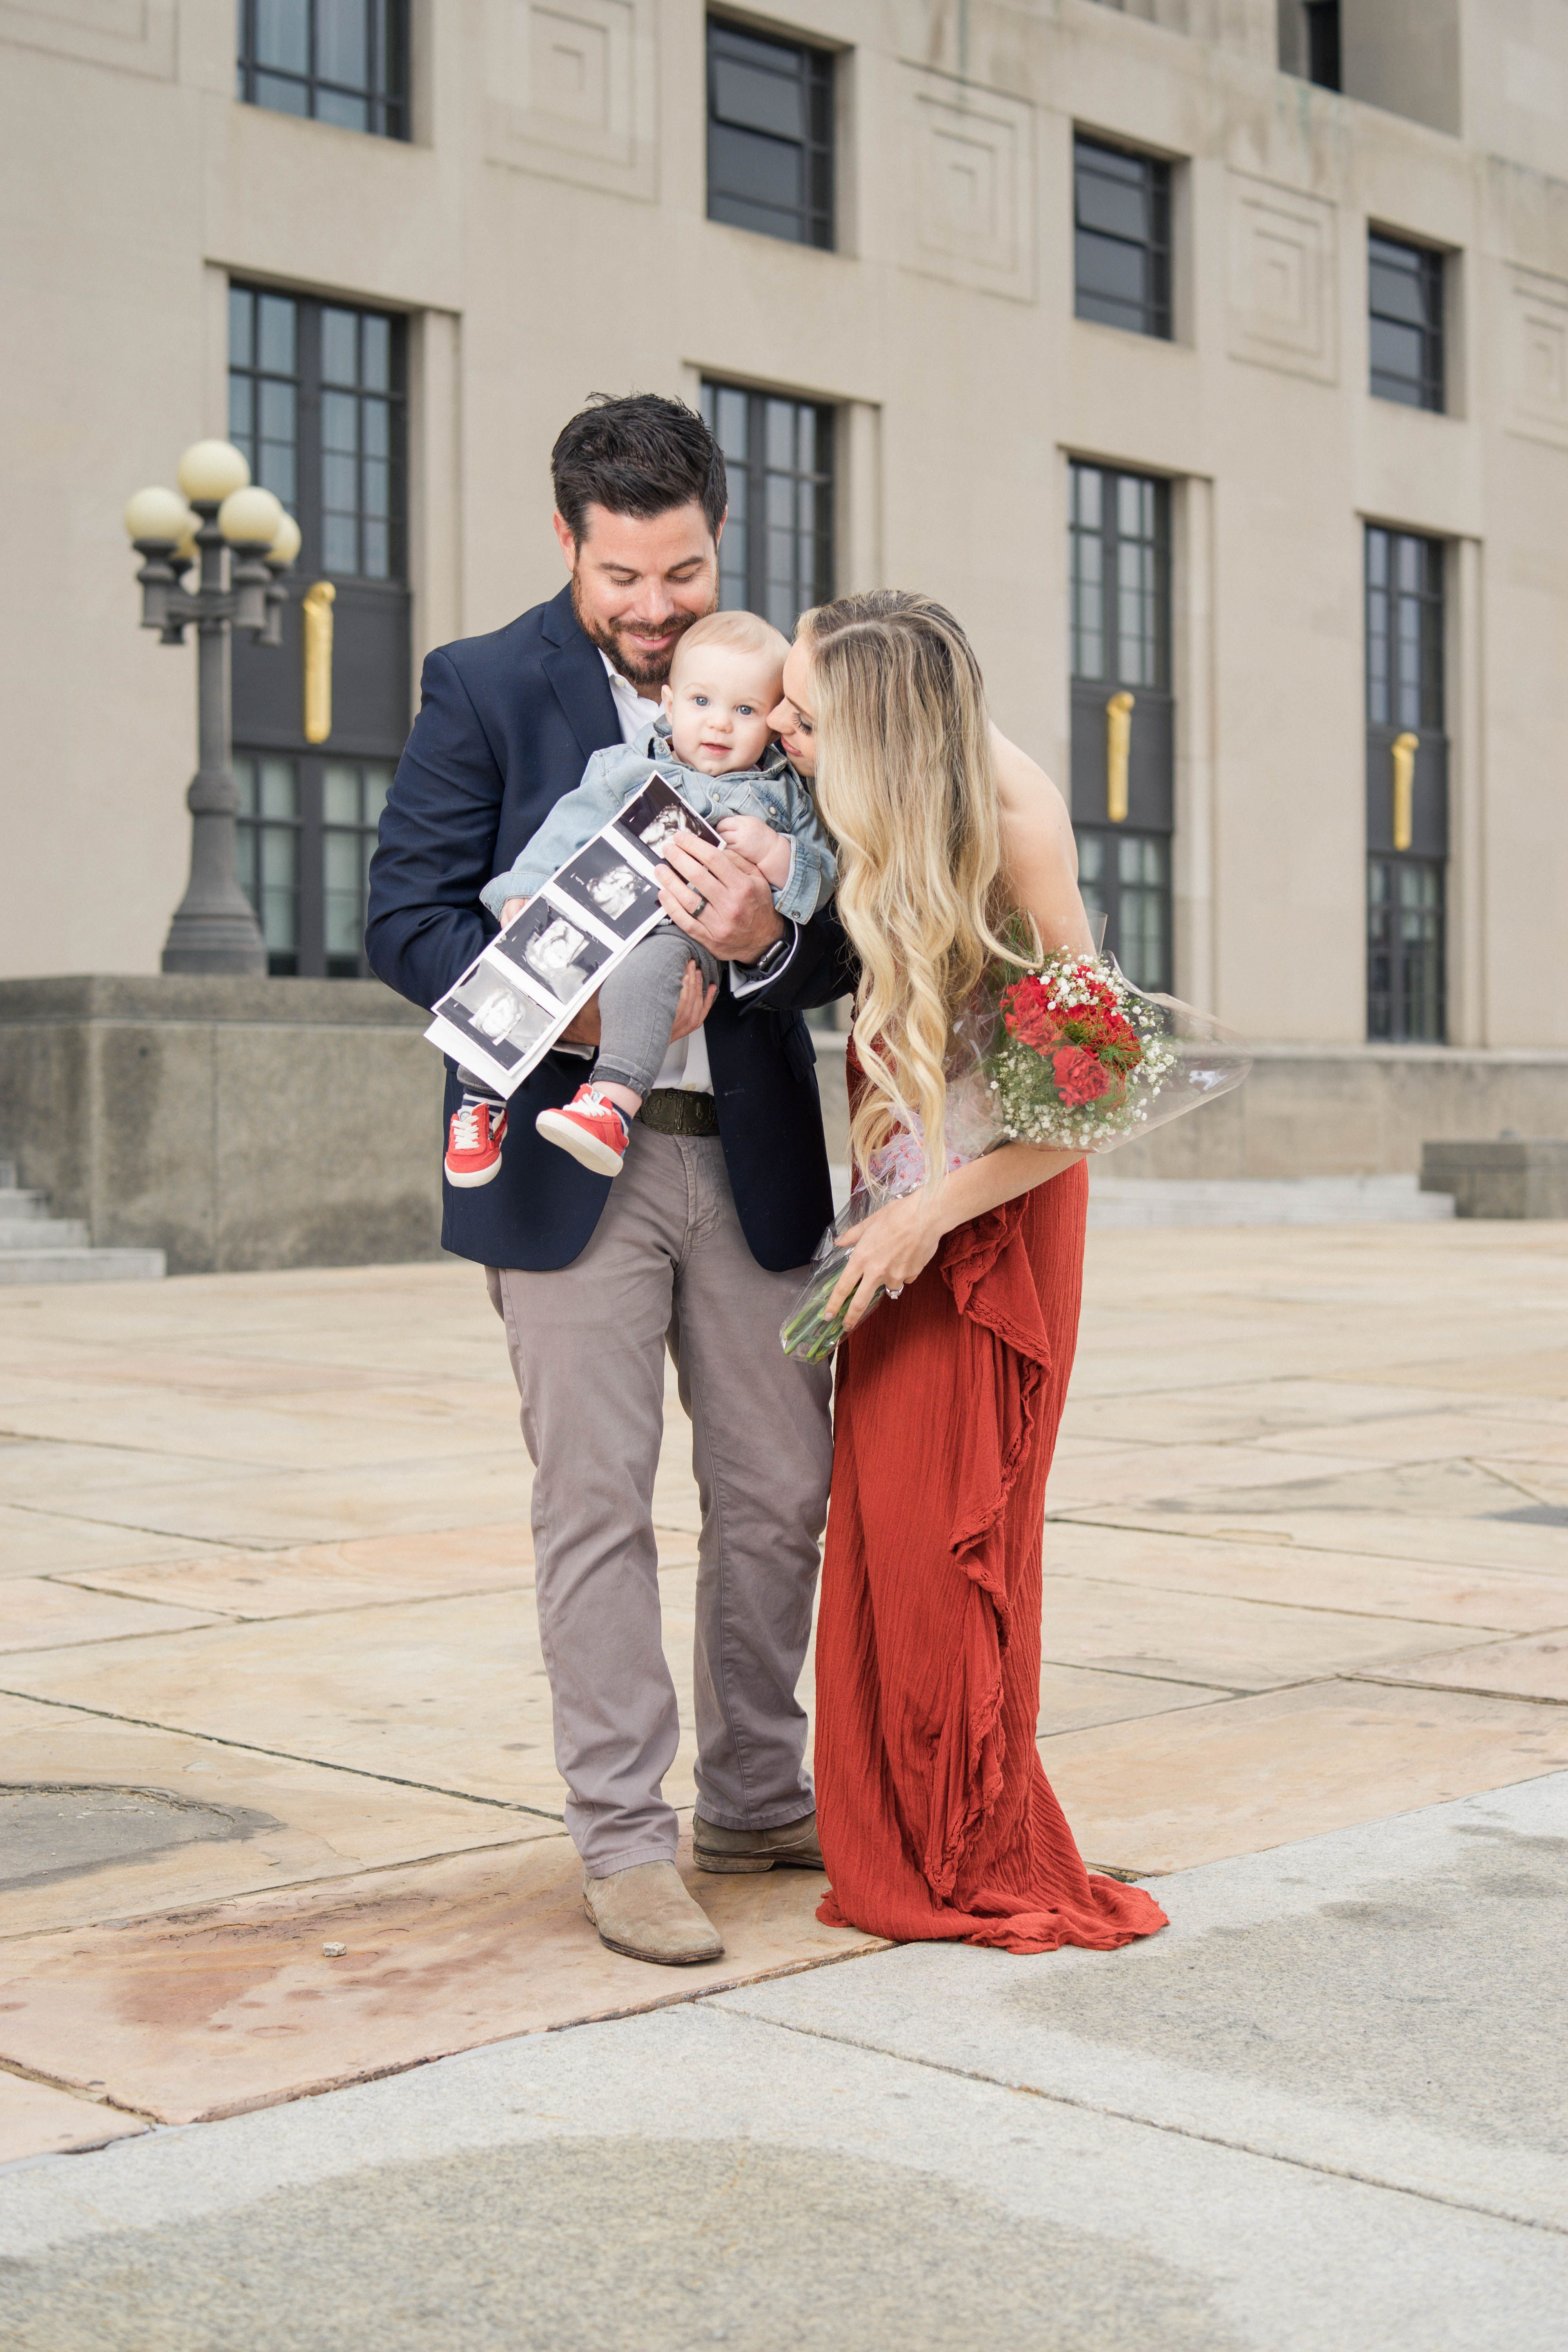 Baby announcement | Family photoshoot | Love themed baby announcement | fashion baby announcement